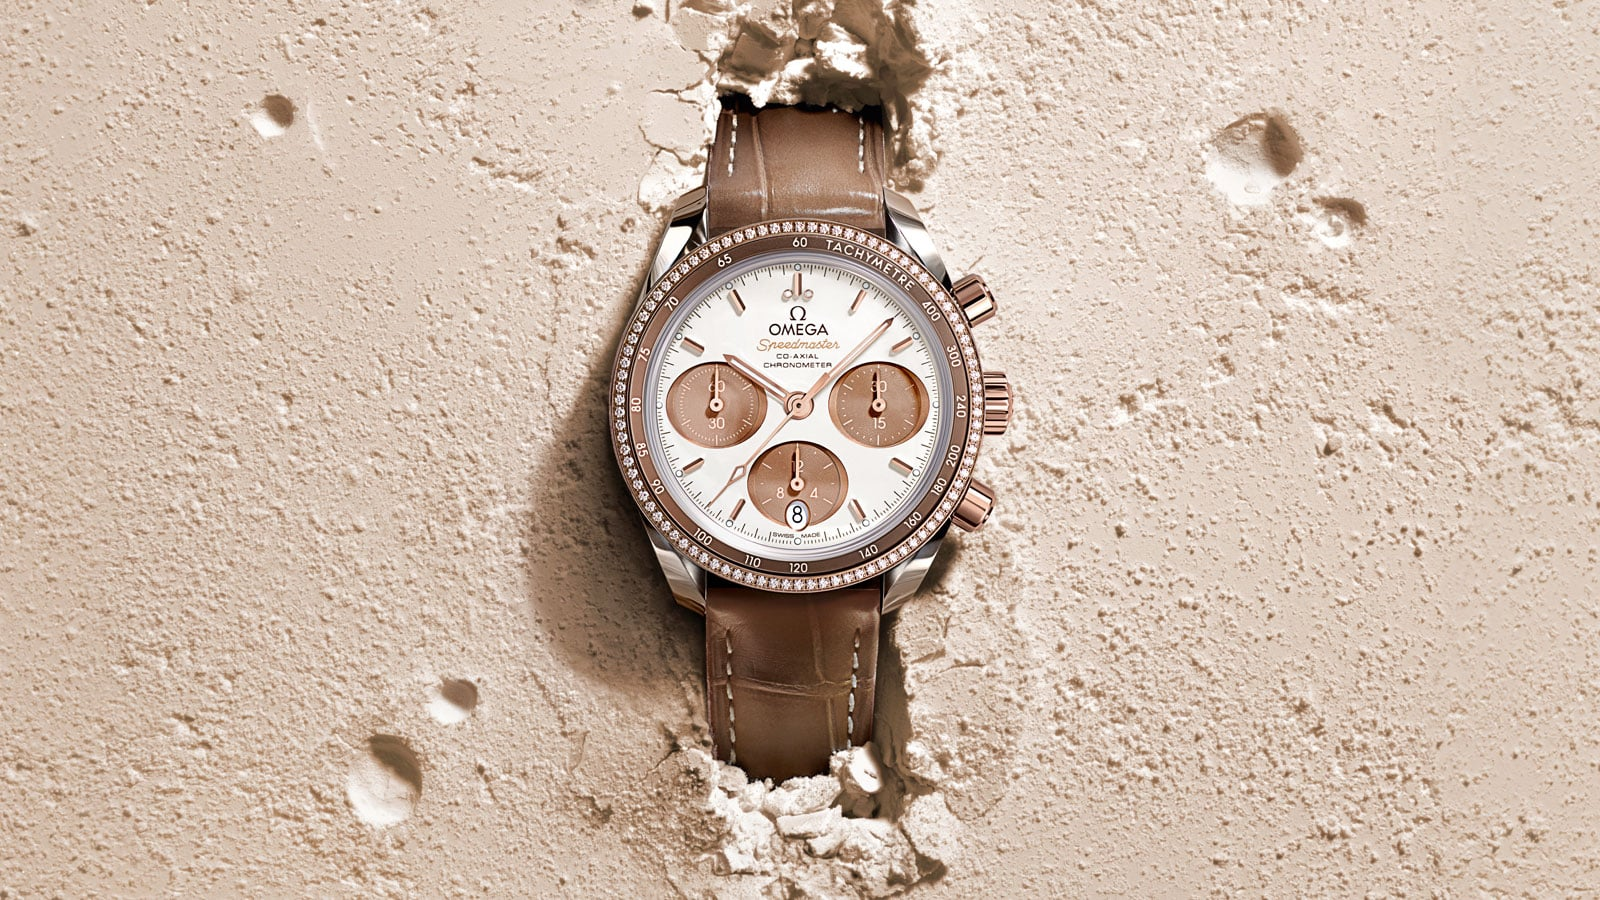 Contextual view of a Speedmaster 38mm watch with a steel and Sedna gold case and leather bracelet placed in sand